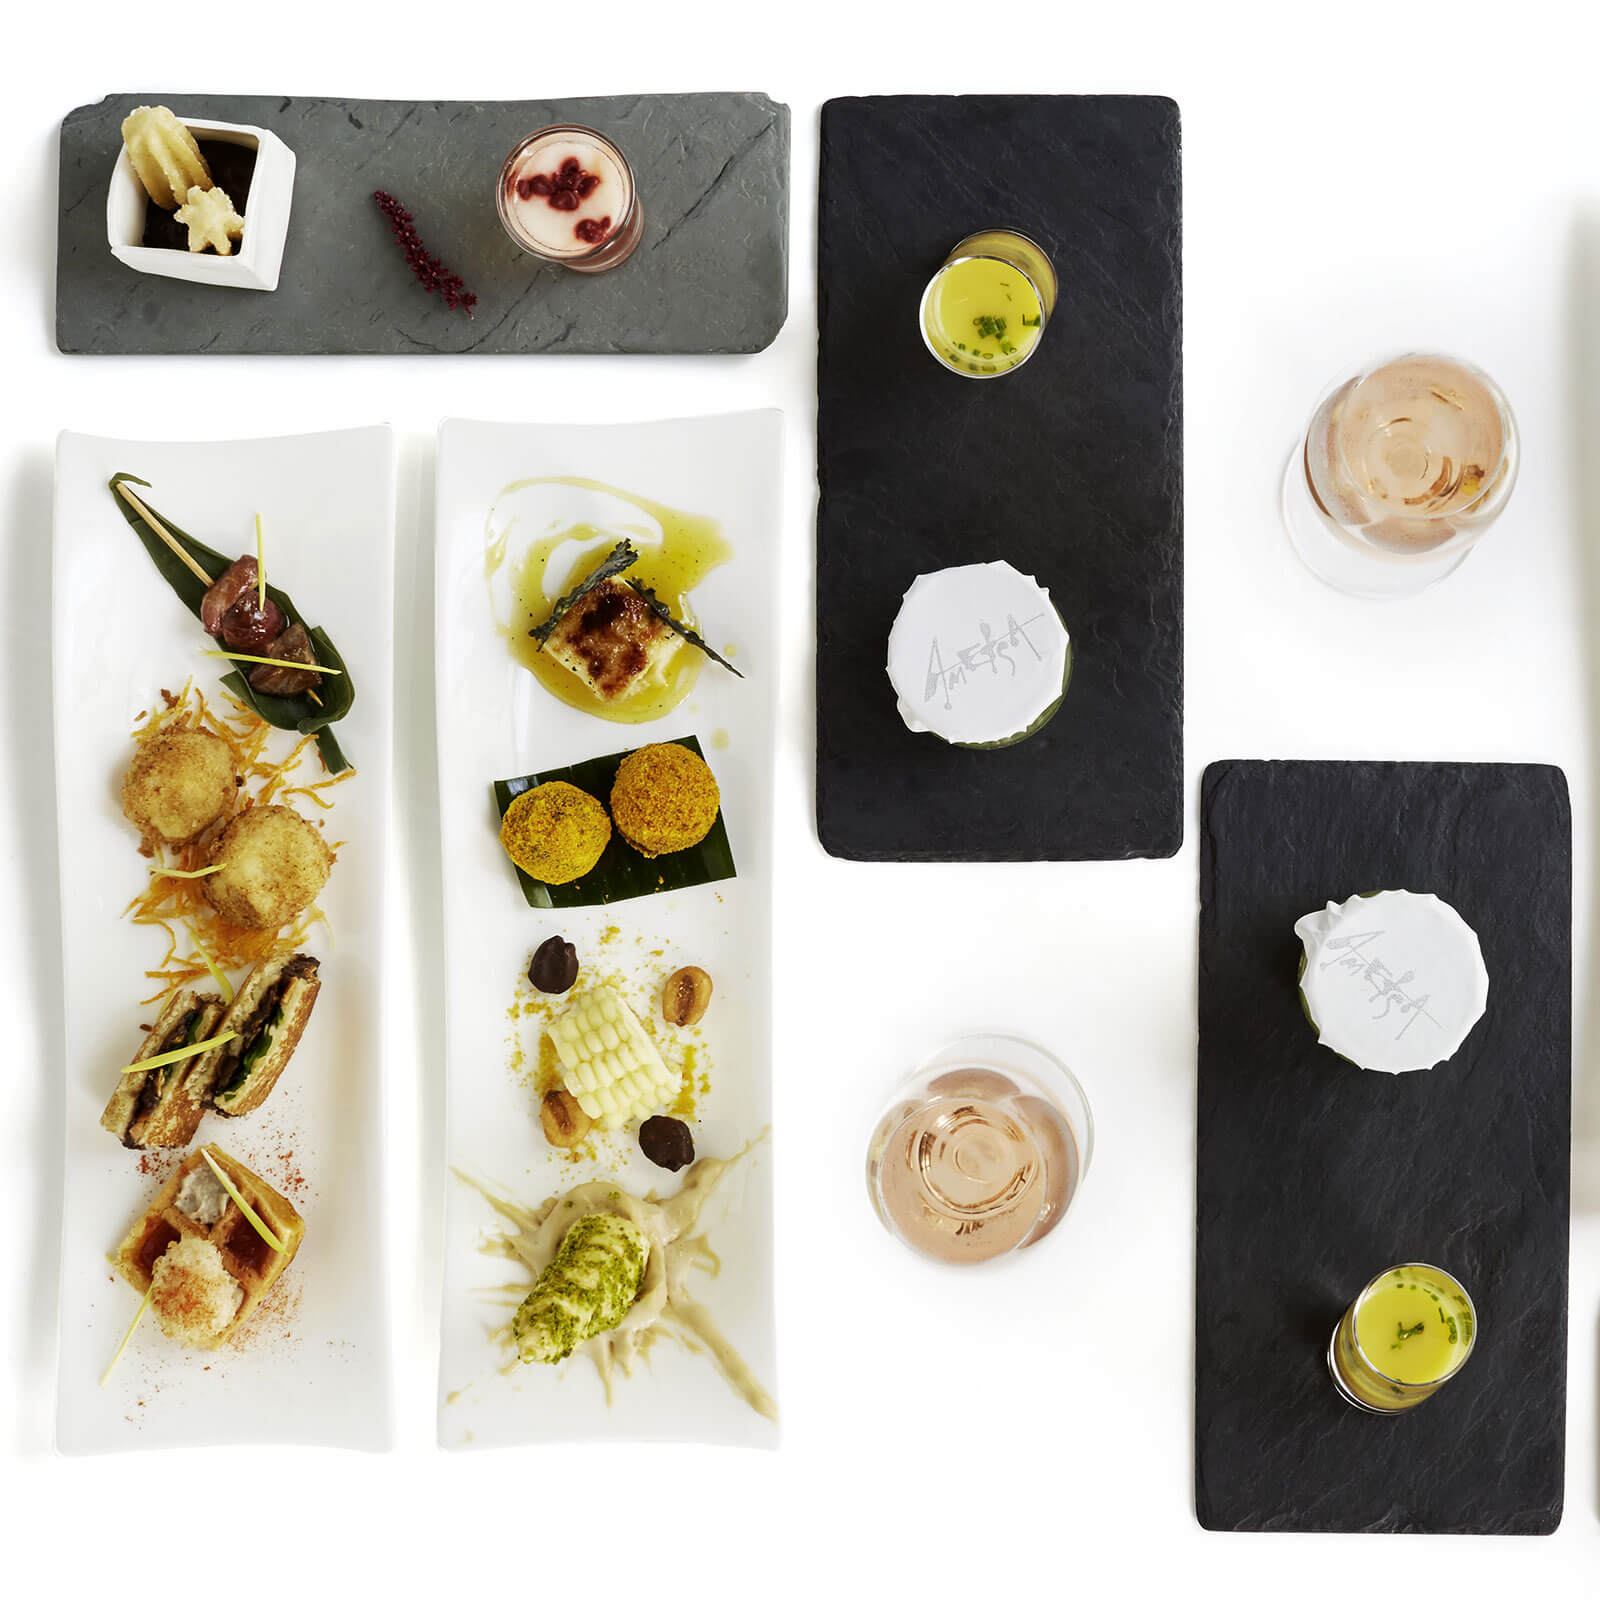 32% Off Afternoon Tea with Cava for Two at COMO The Halkin Hotel, London